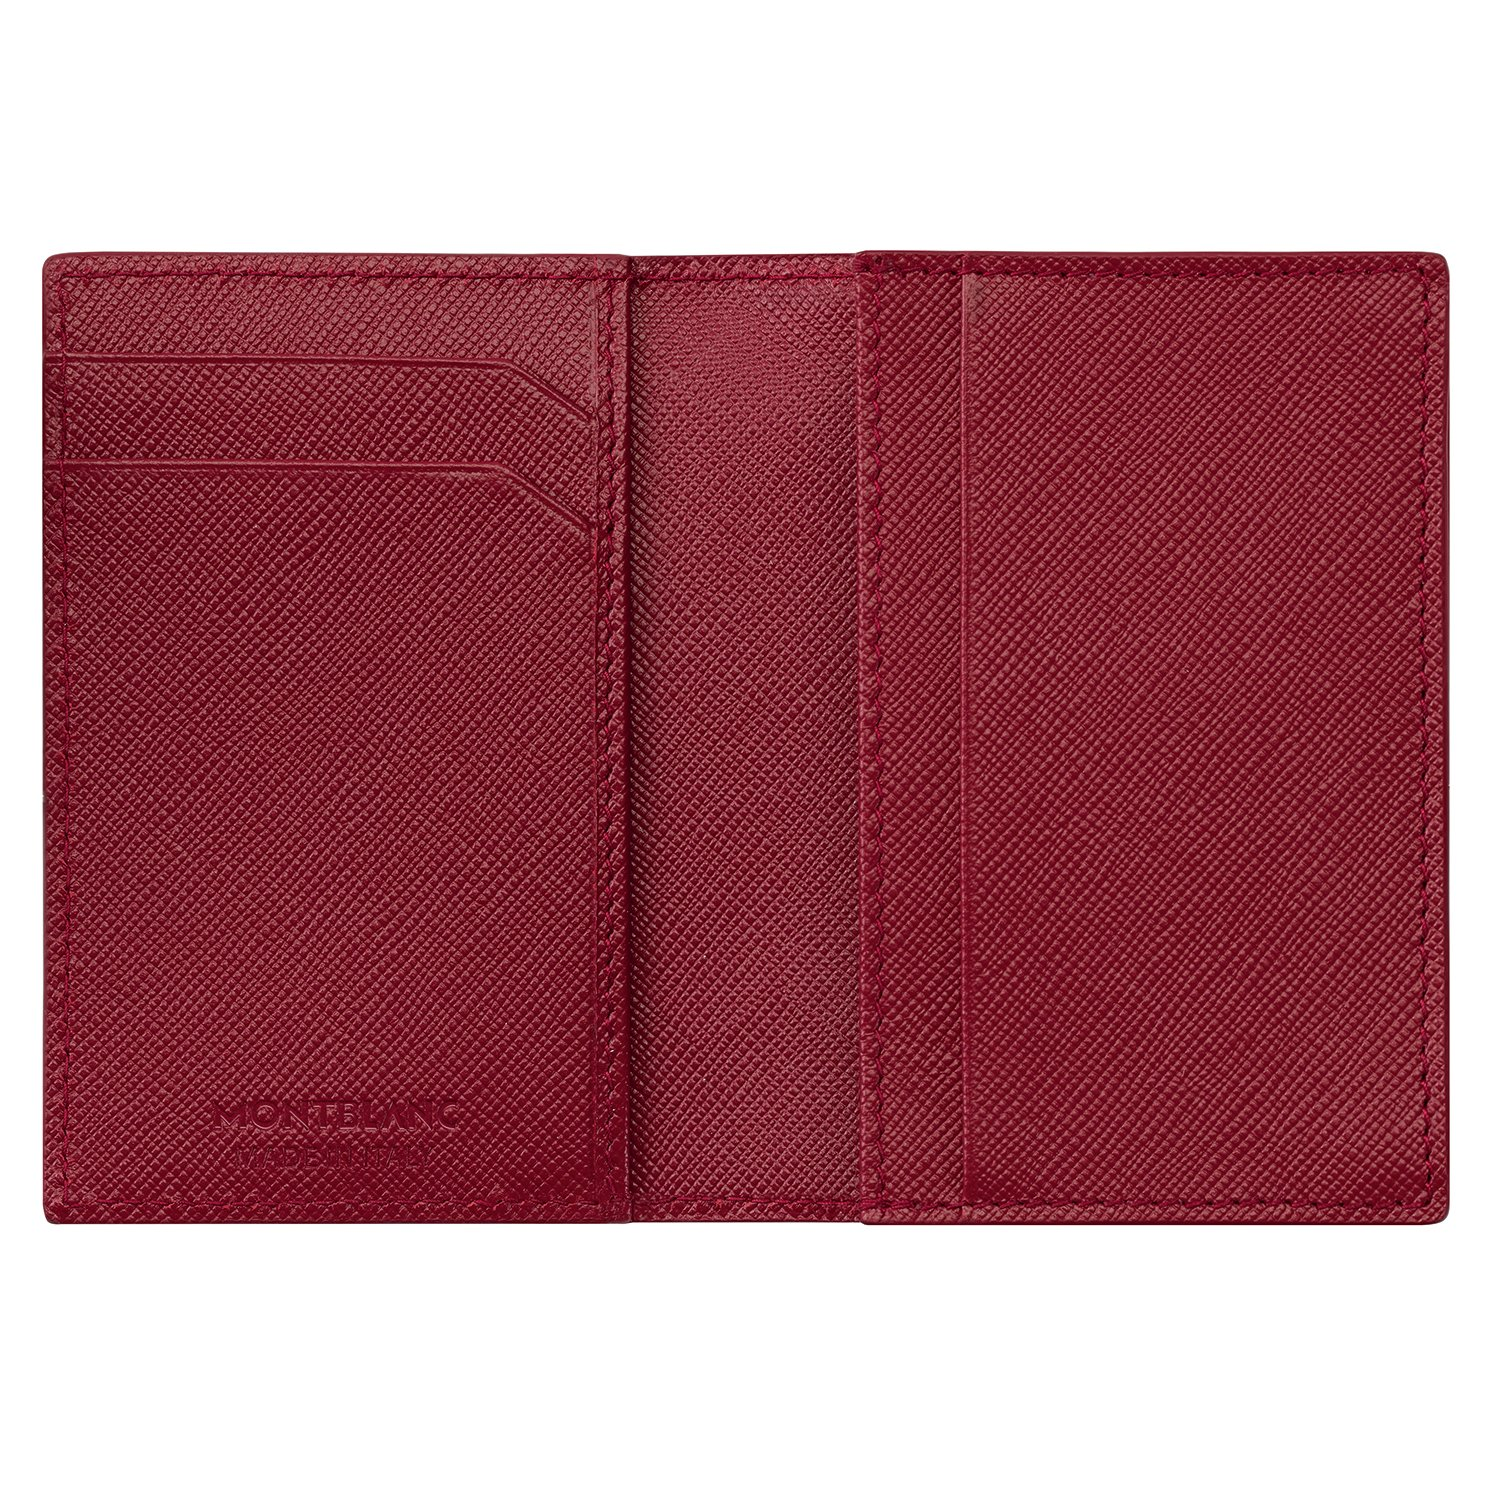 Montblanc 115848 Business Card Holder with Gusset by MONTBLANC (Image #2)